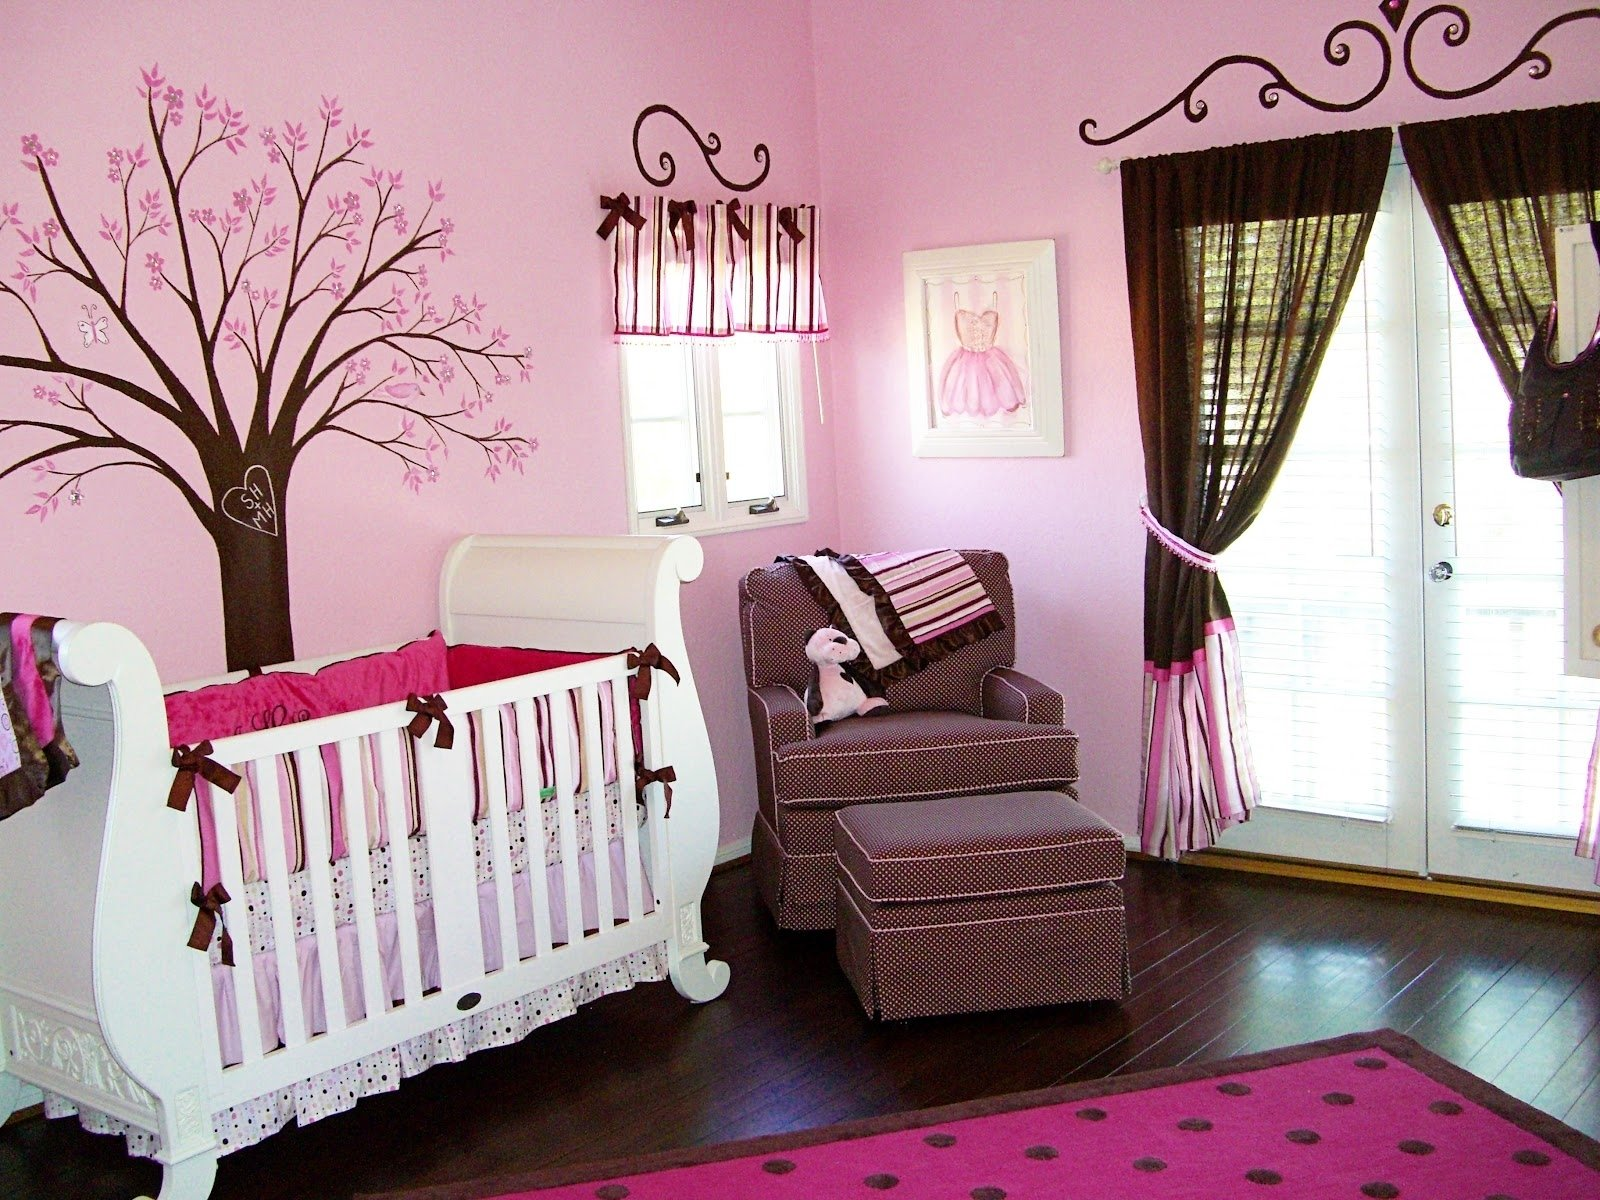 10 Ideal Baby Room Ideas For Girl baby room ideas for a girl home delightful